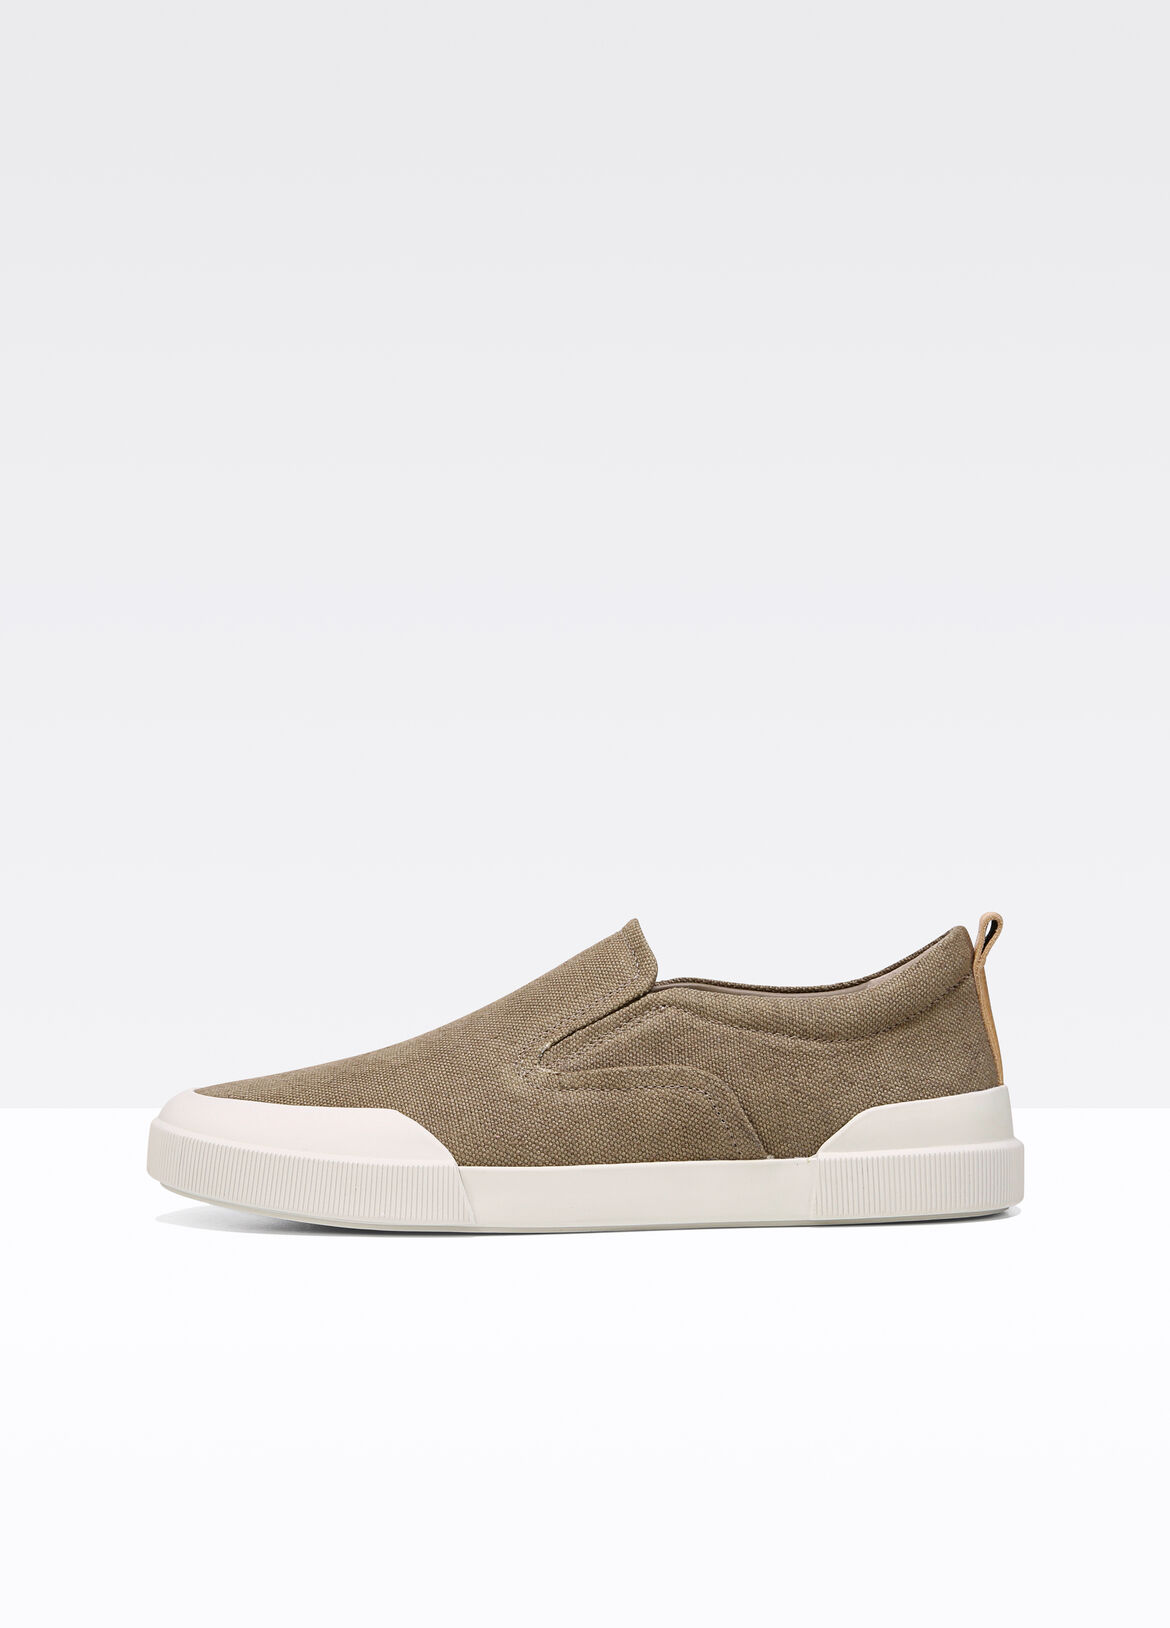 빈스 Vince Vernon Canvas Sneakers,flint cucio